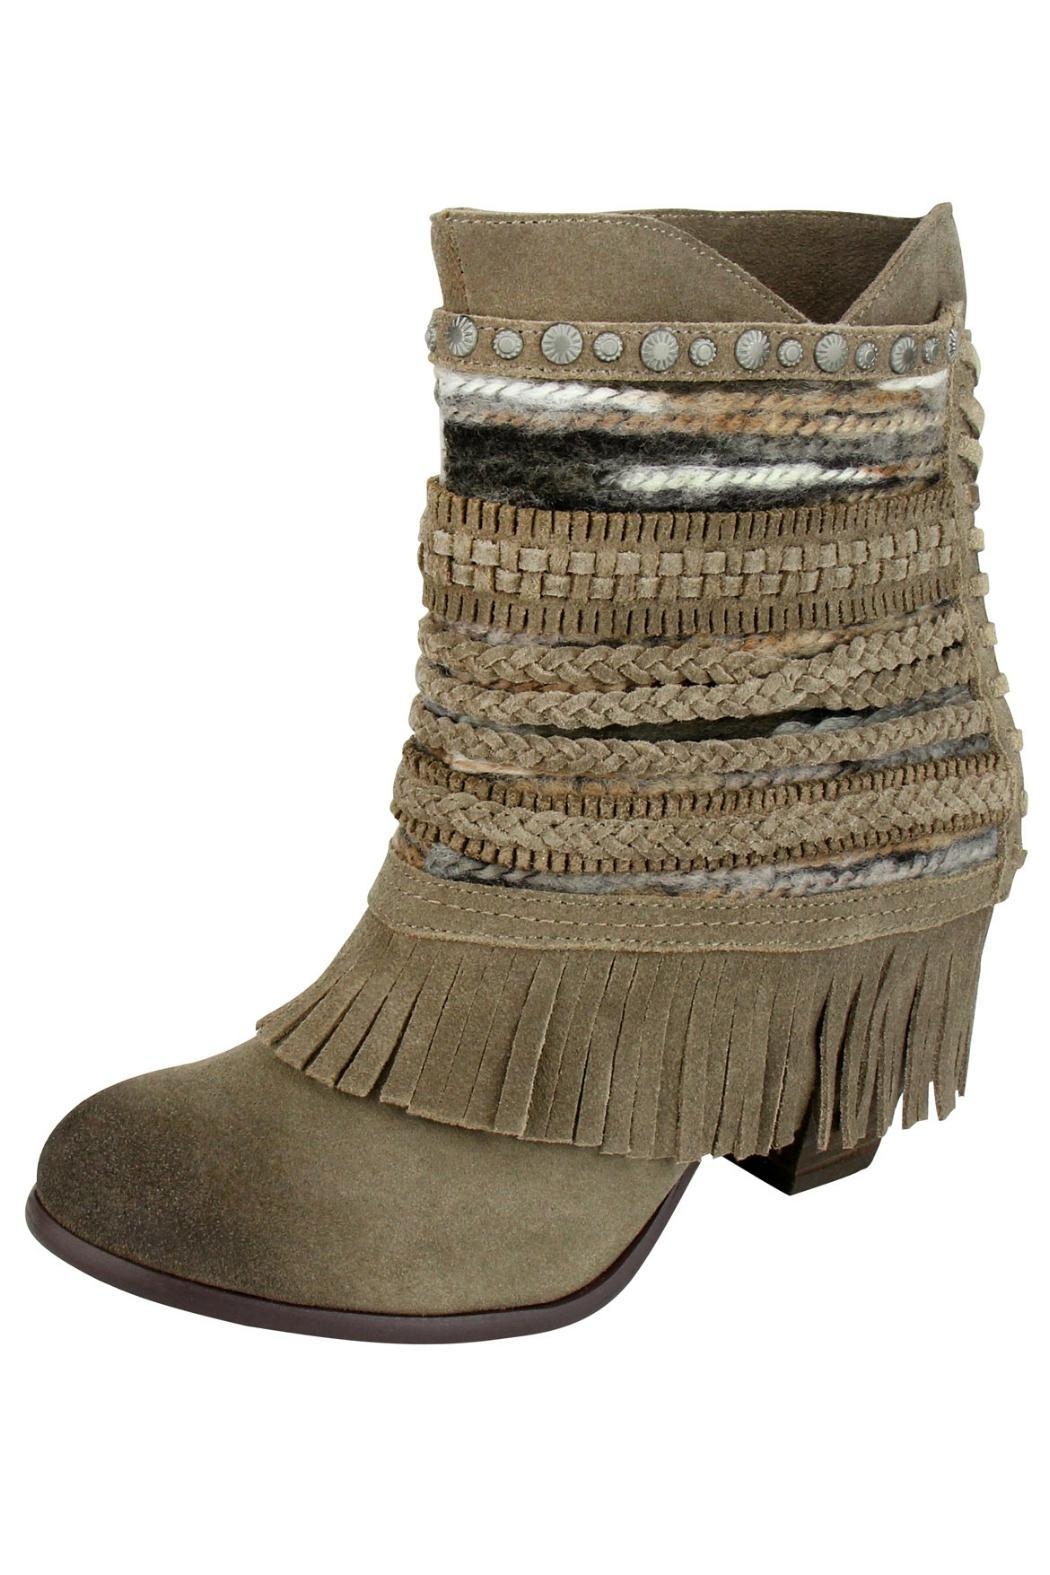 70f4398771d Naughty Monkey Poncho Boots from Pennsylvania by Addictive Apparel ...